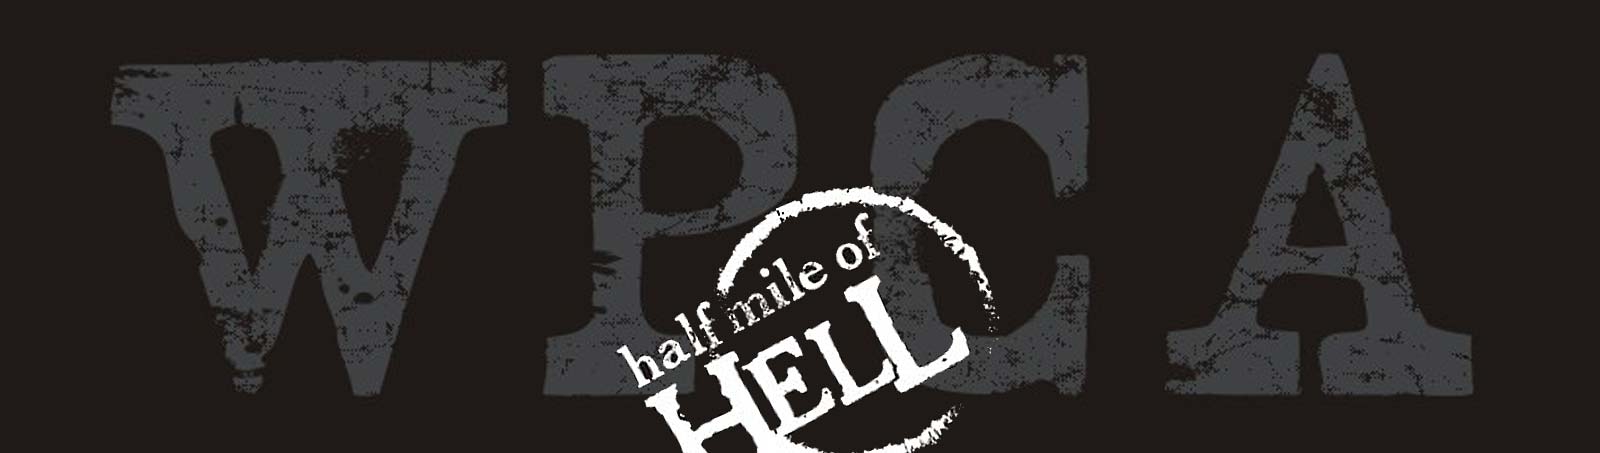 WPCA - Half Mile of Hell background